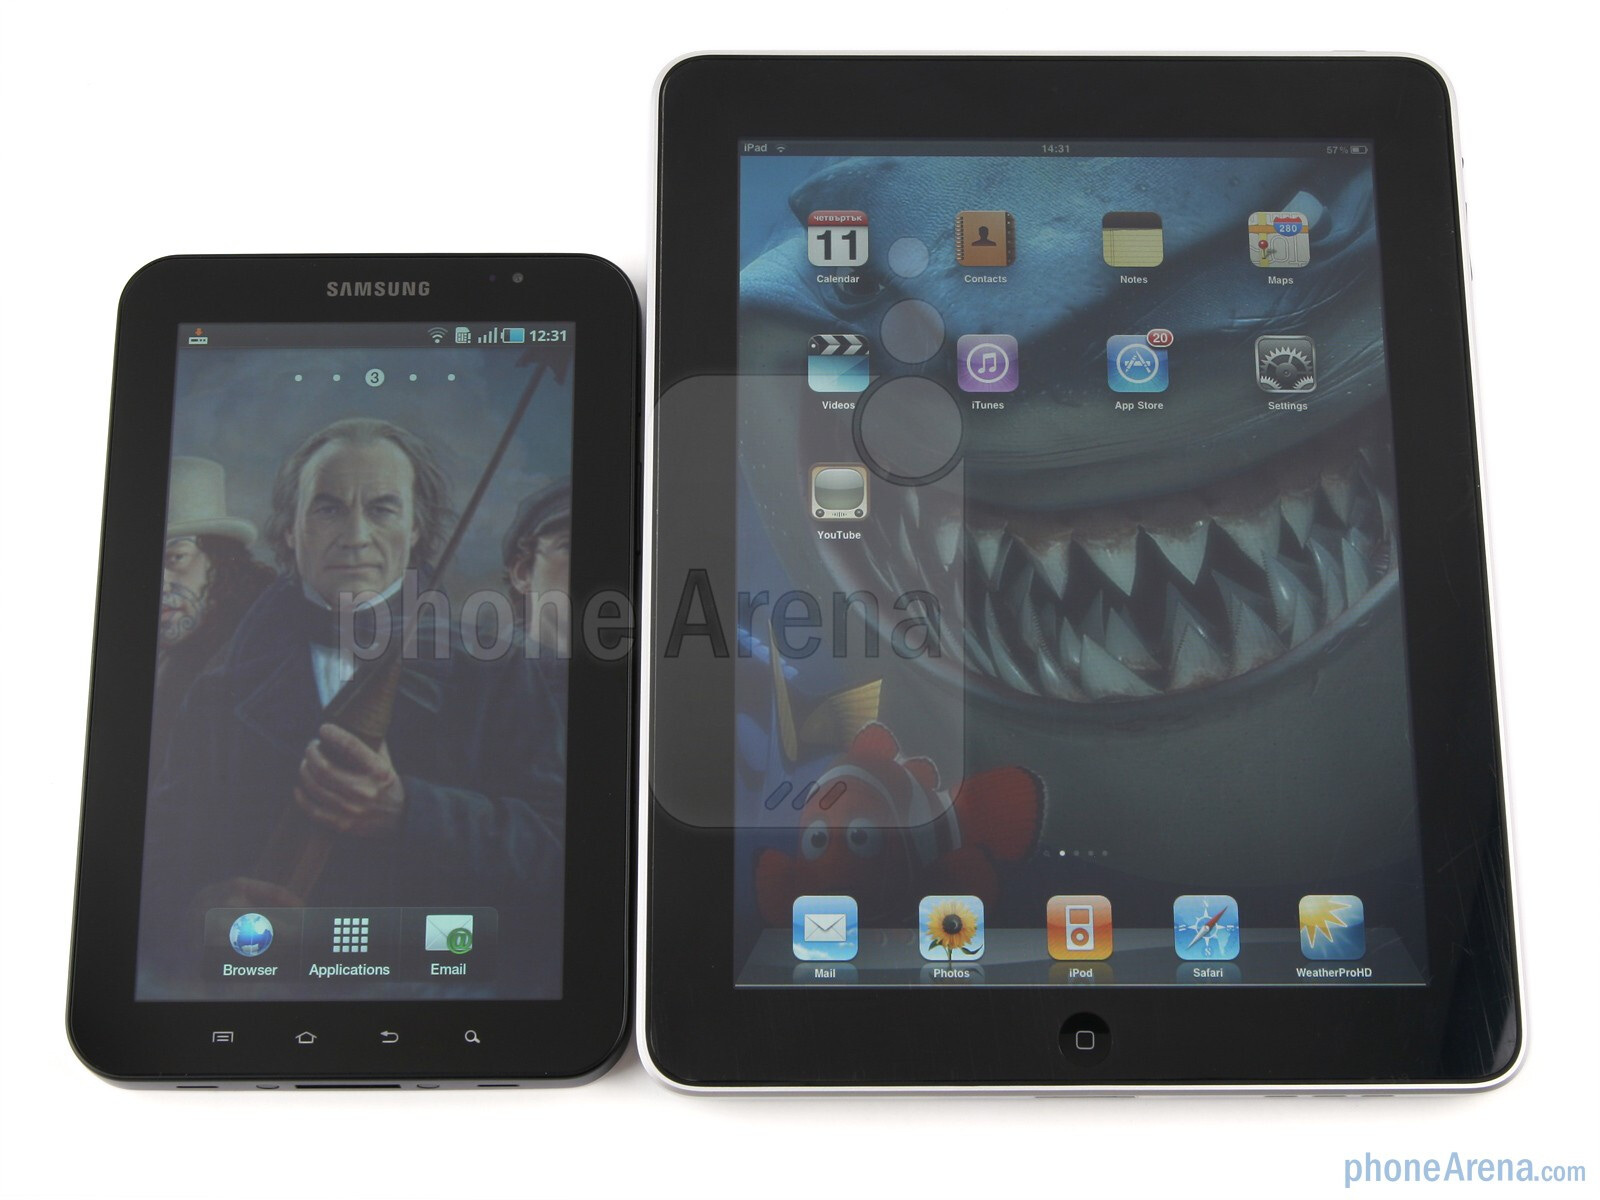 samsungs galaxy and apples i pad [updated aug 25, 2012] - before launching into this review, which pits samsung's galaxy tab 101 against apple's ipad 2, i took a few days to familiarize myself with the galaxy tab's android 31 (honeycomb) os.